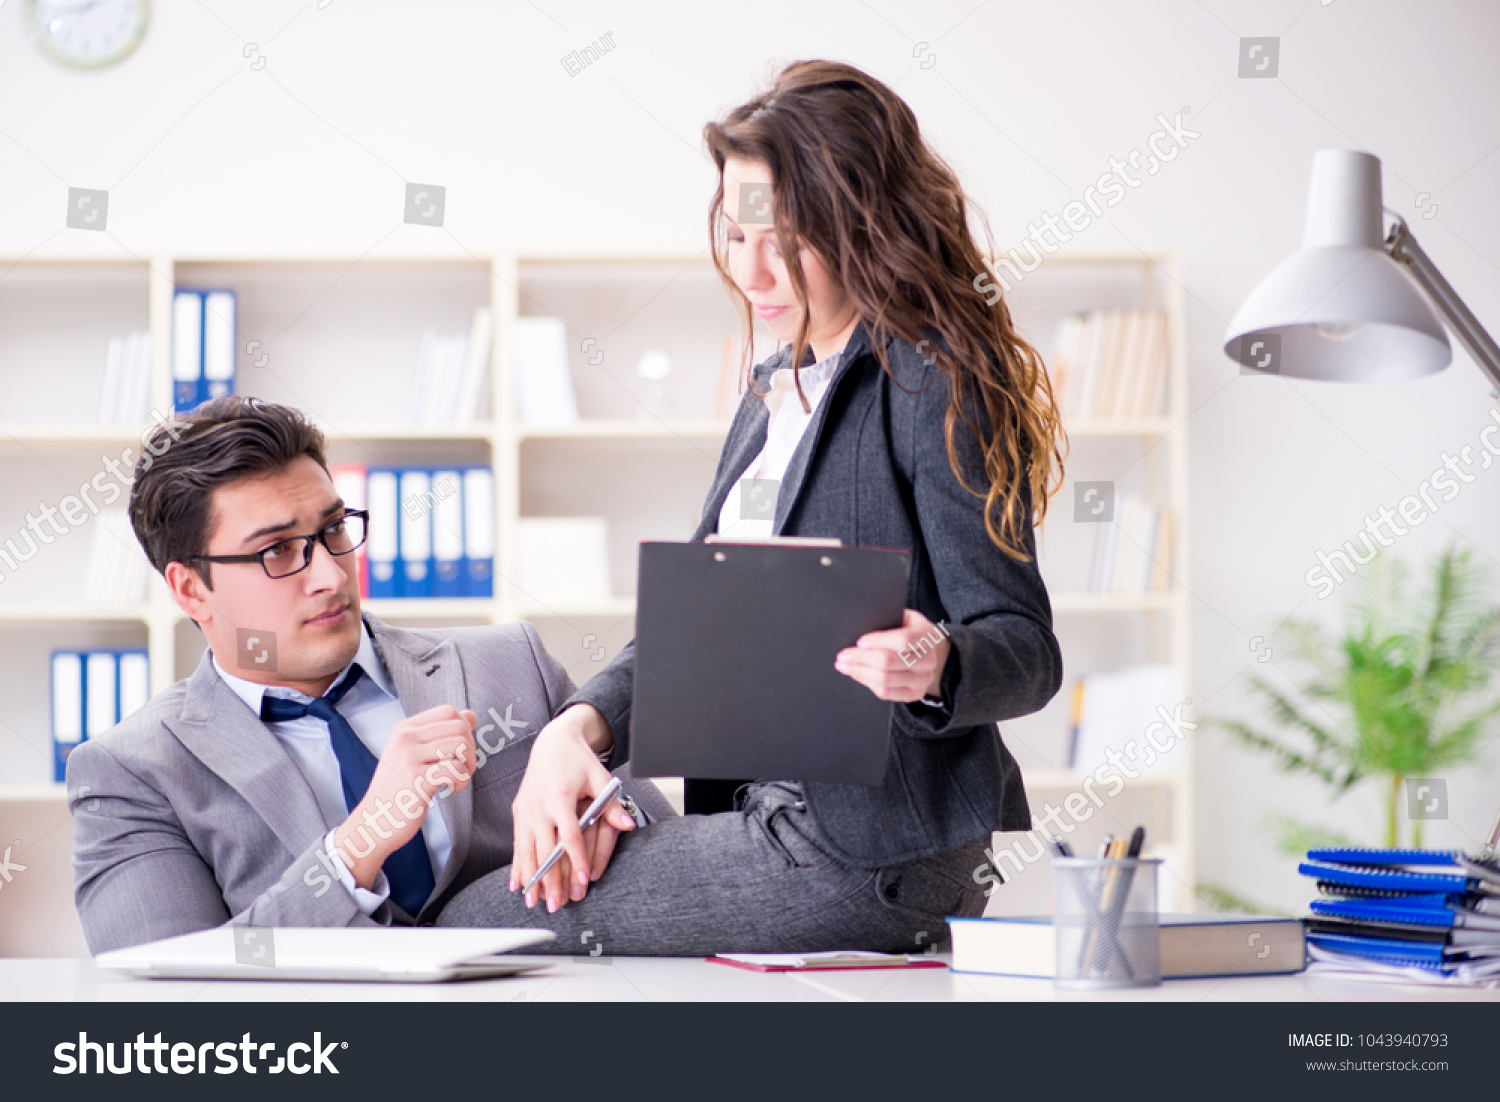 Sexual harassment bribery in business